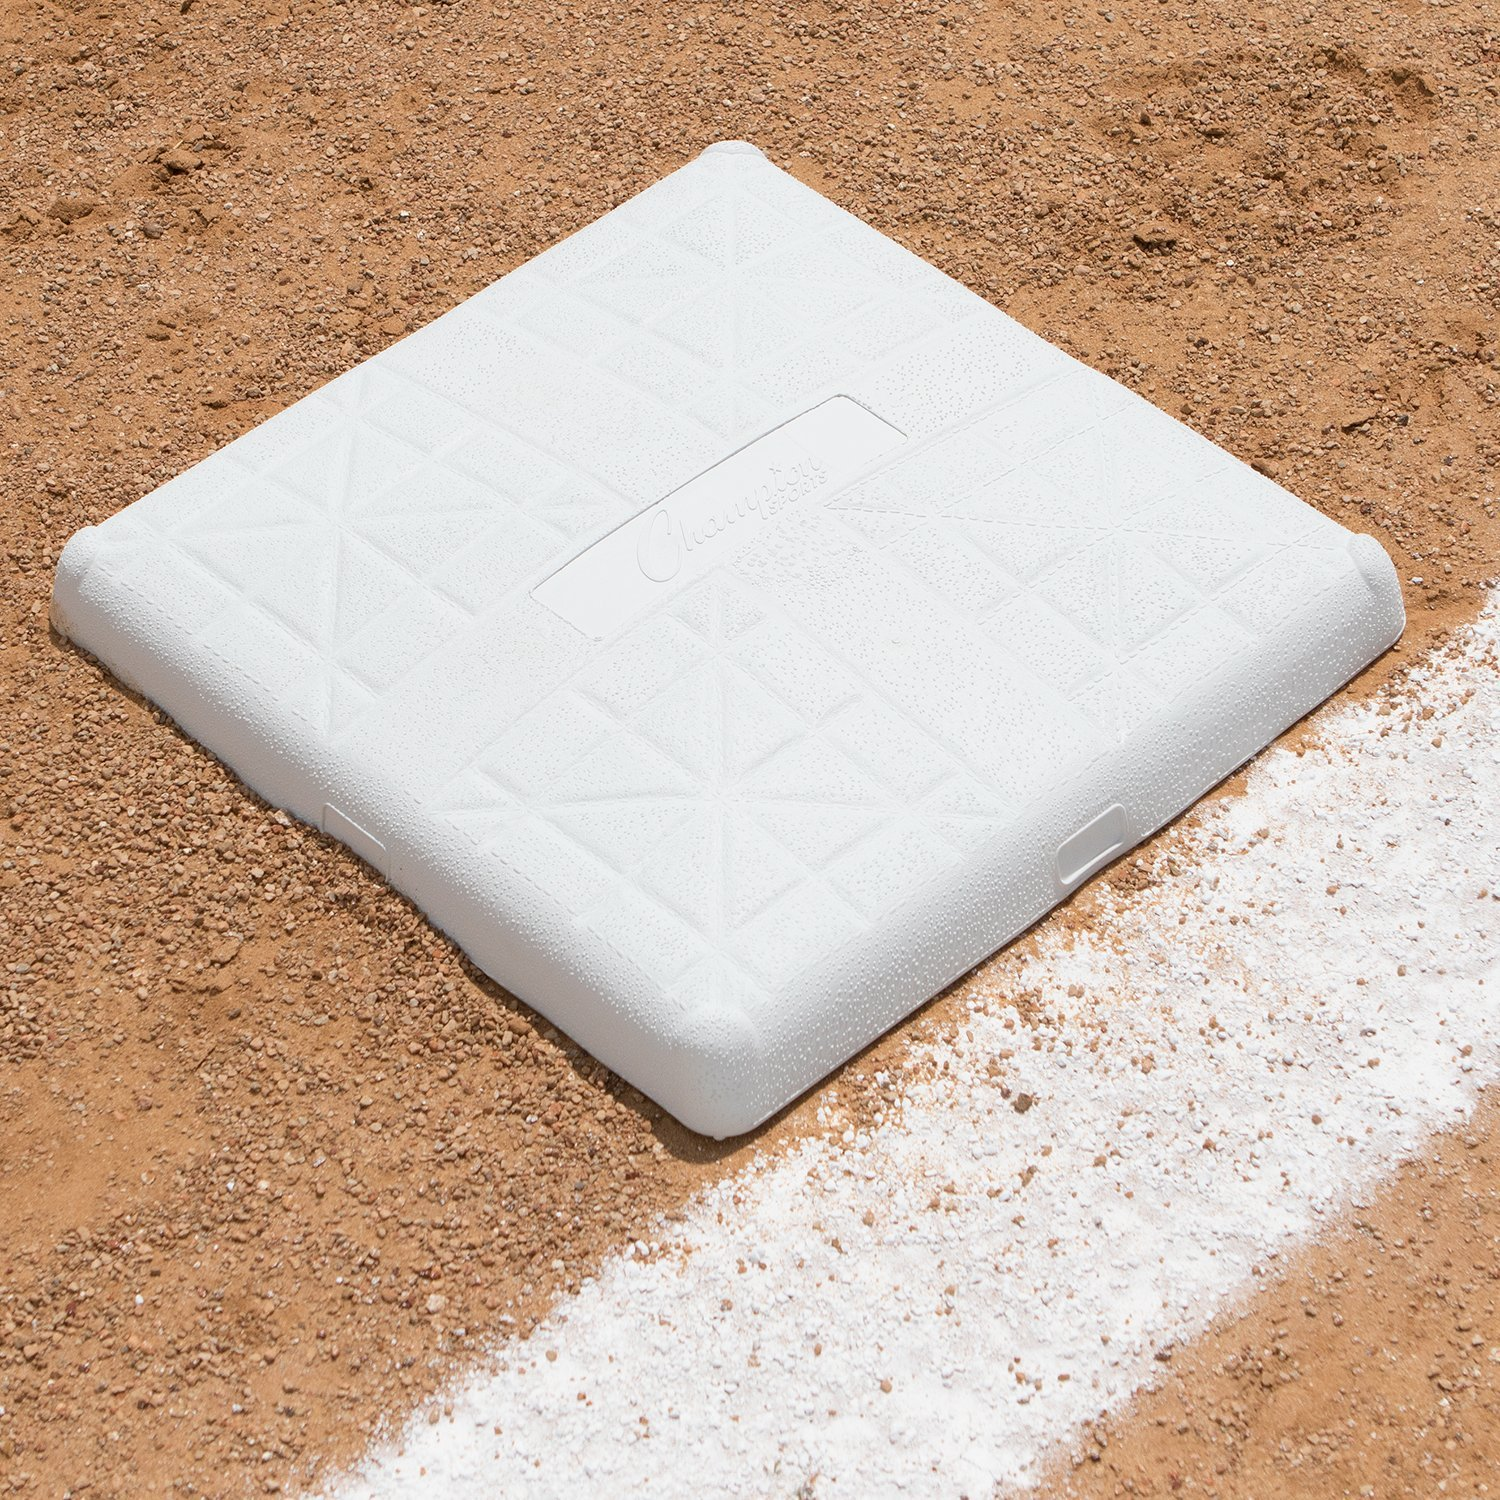 Champion Sports Impact Baseball Bases: Hollywood Type Safety Collapsible Bases with Anchor Plug - Sports Equipment Bags for Youth Baseball & Softball by Champion Sports (Image #4)